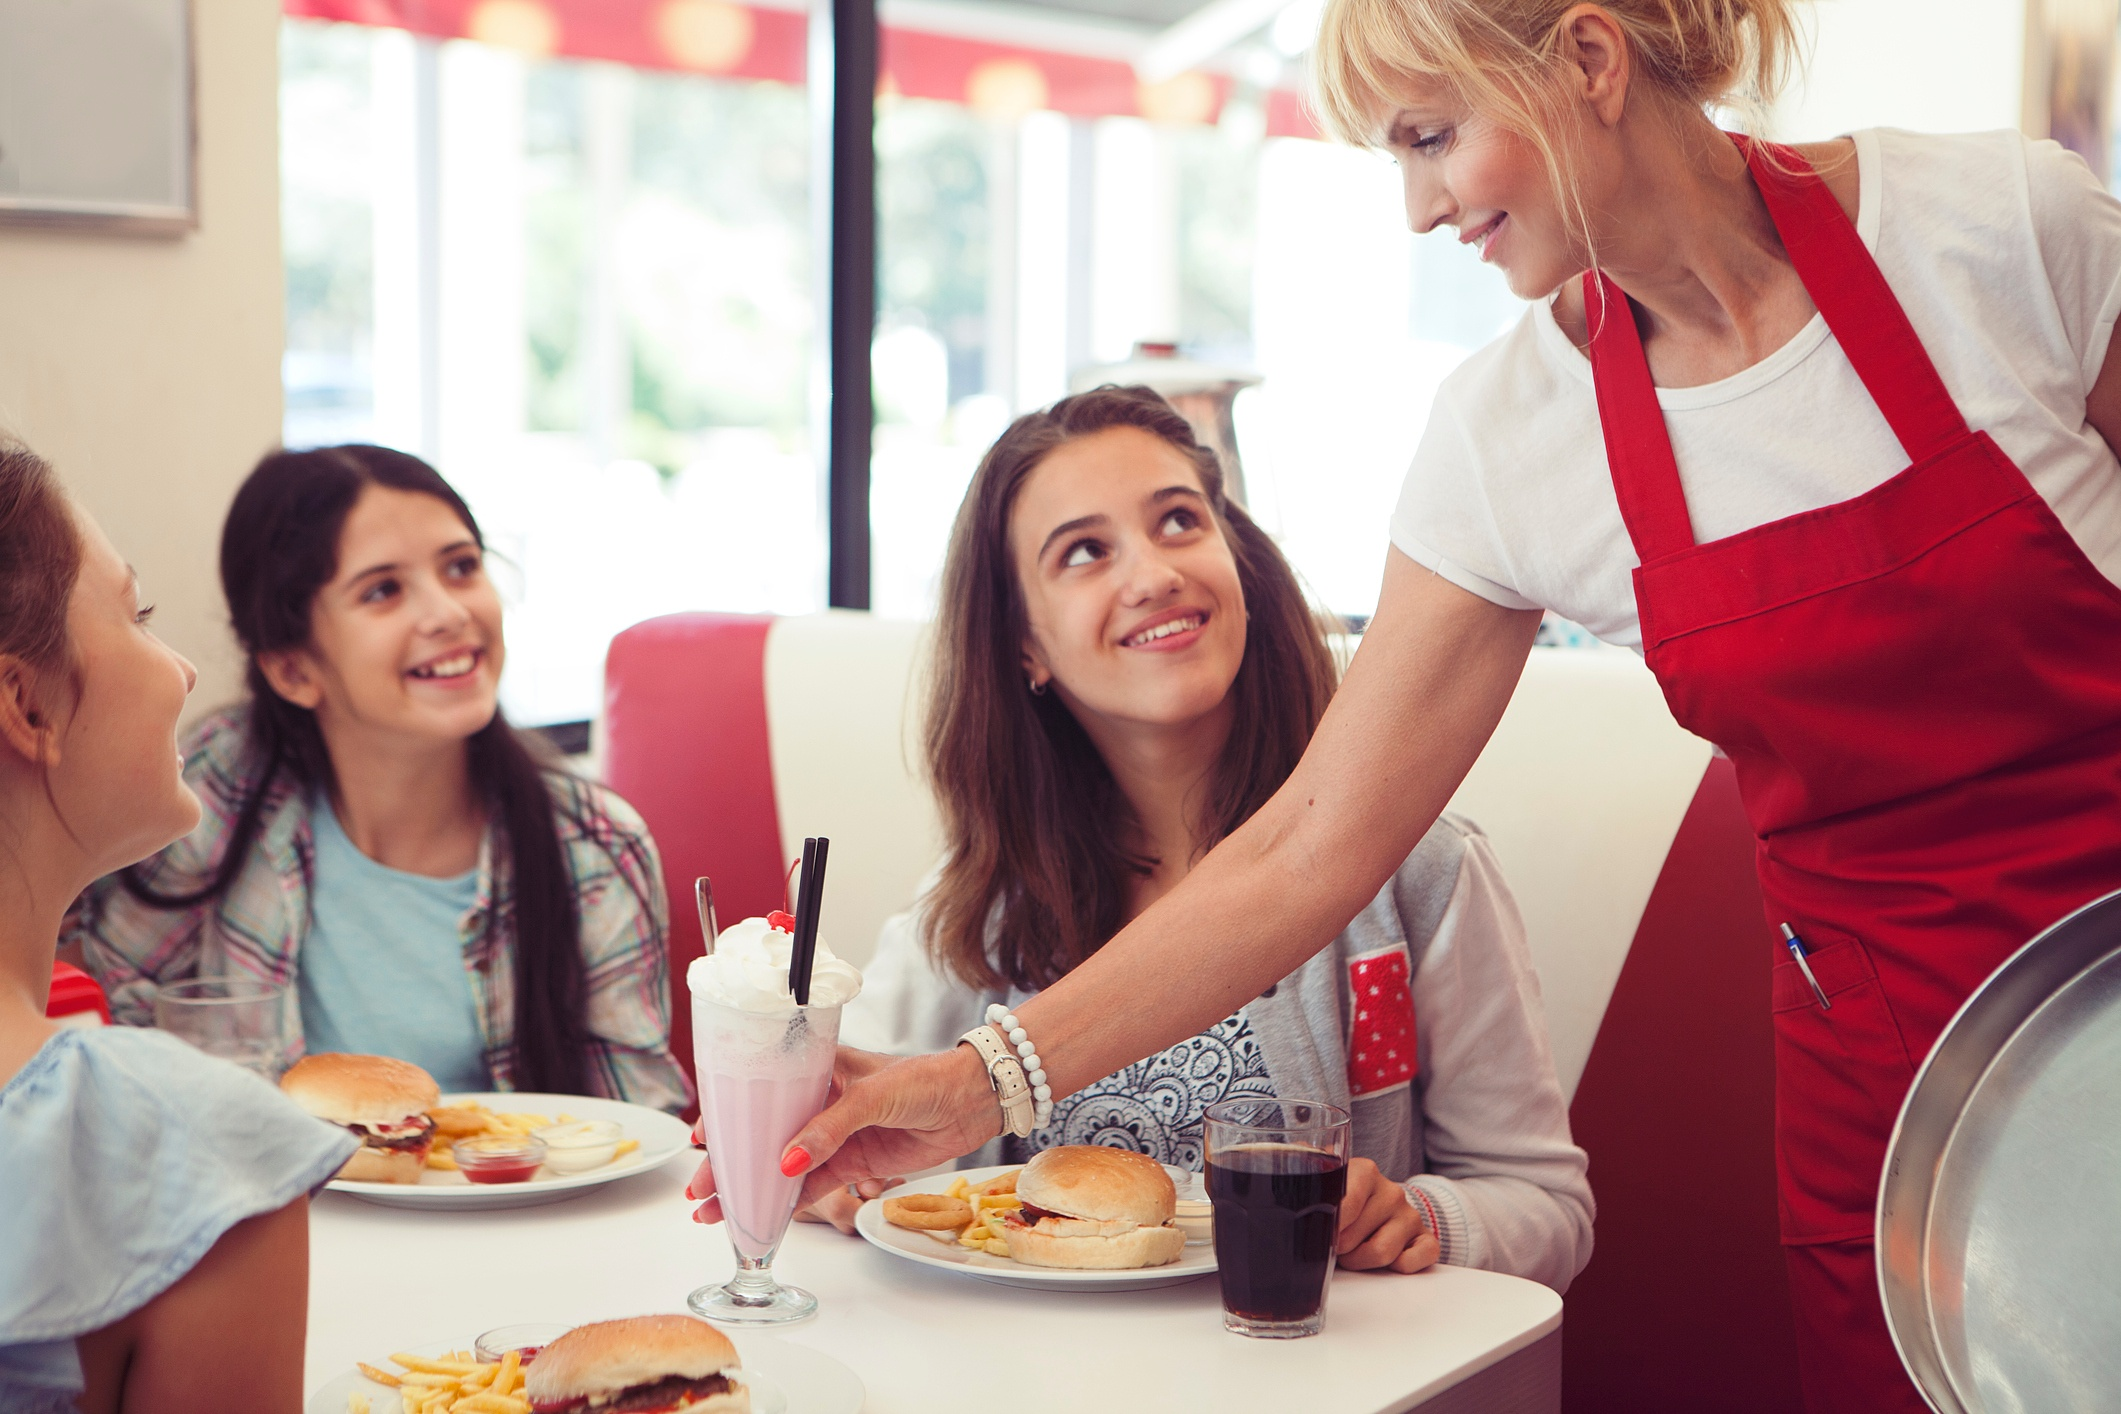 Waitress serving a family with empathy